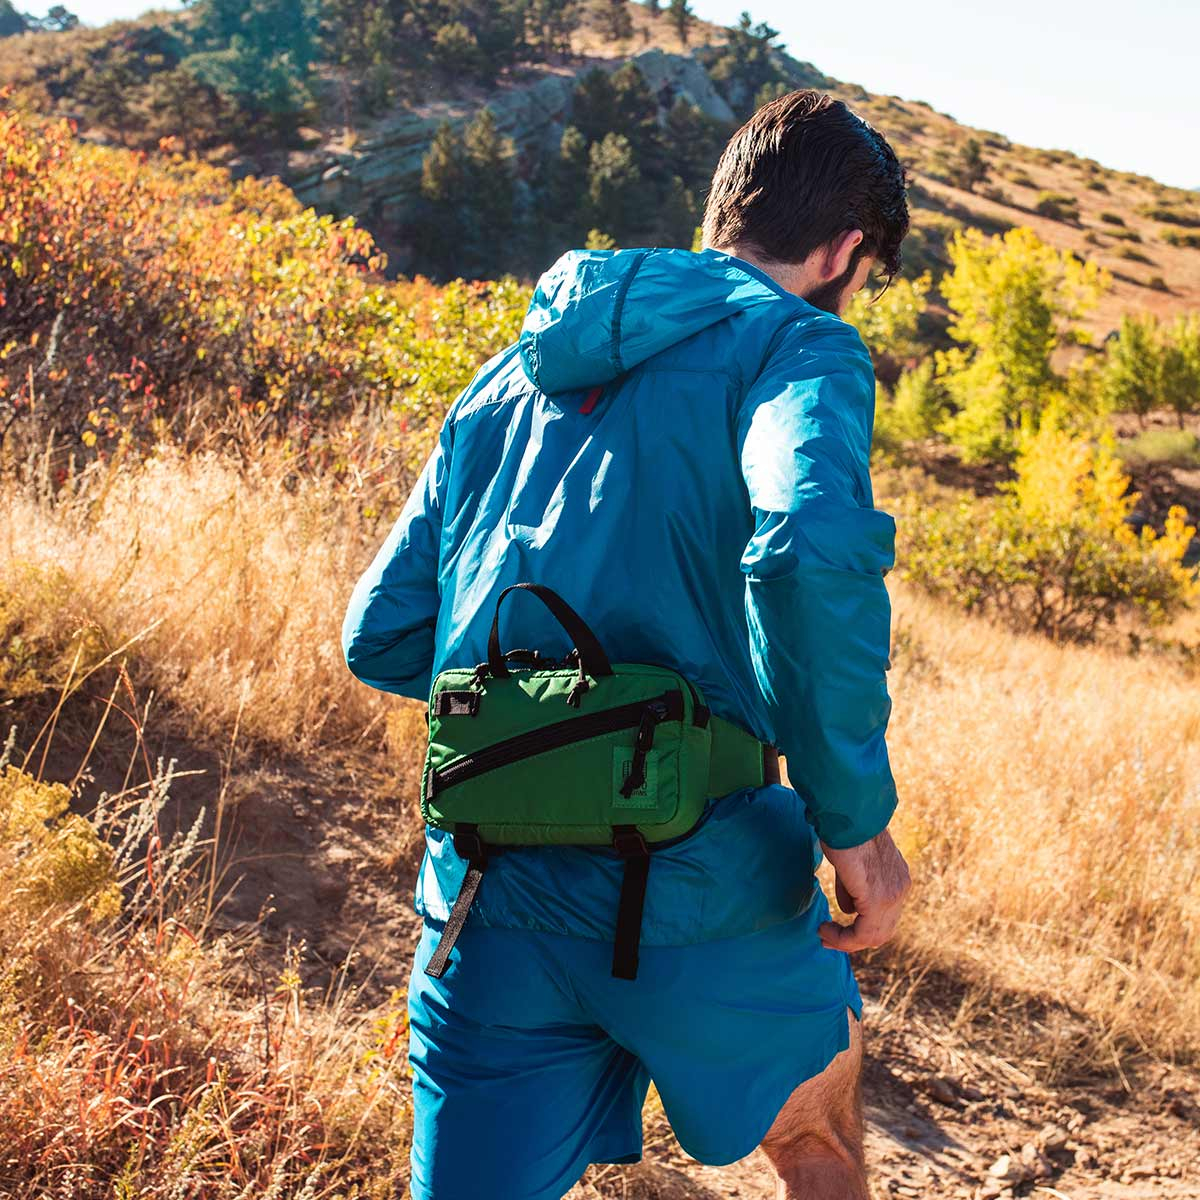 Topo Designs Mini Quick Pack Green, a well-built, secure bag for travel